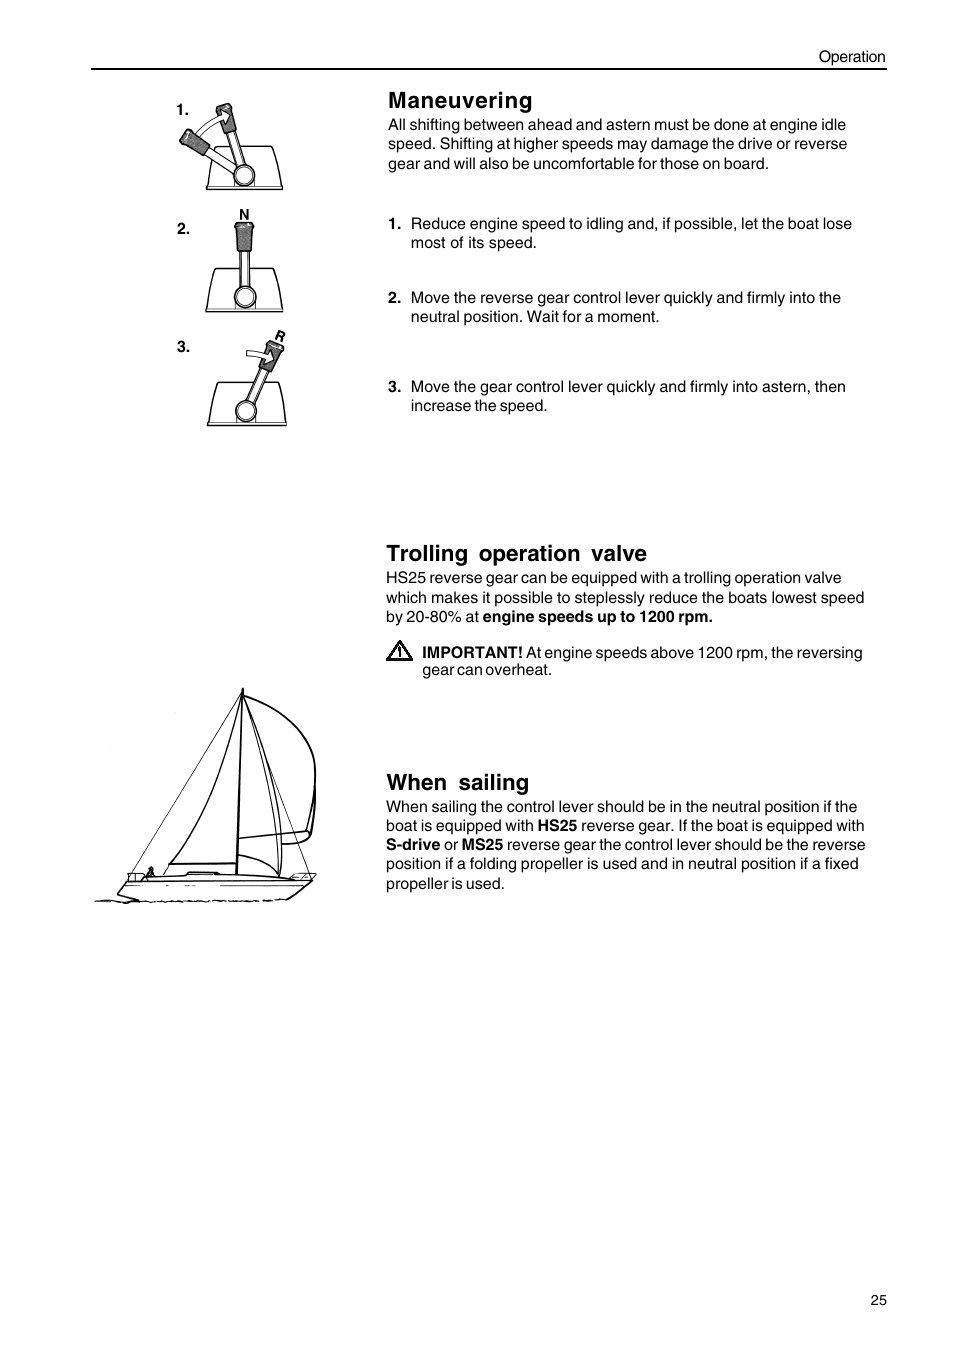 Maneuvering, When sailing, Trolling operation valve | Volvo